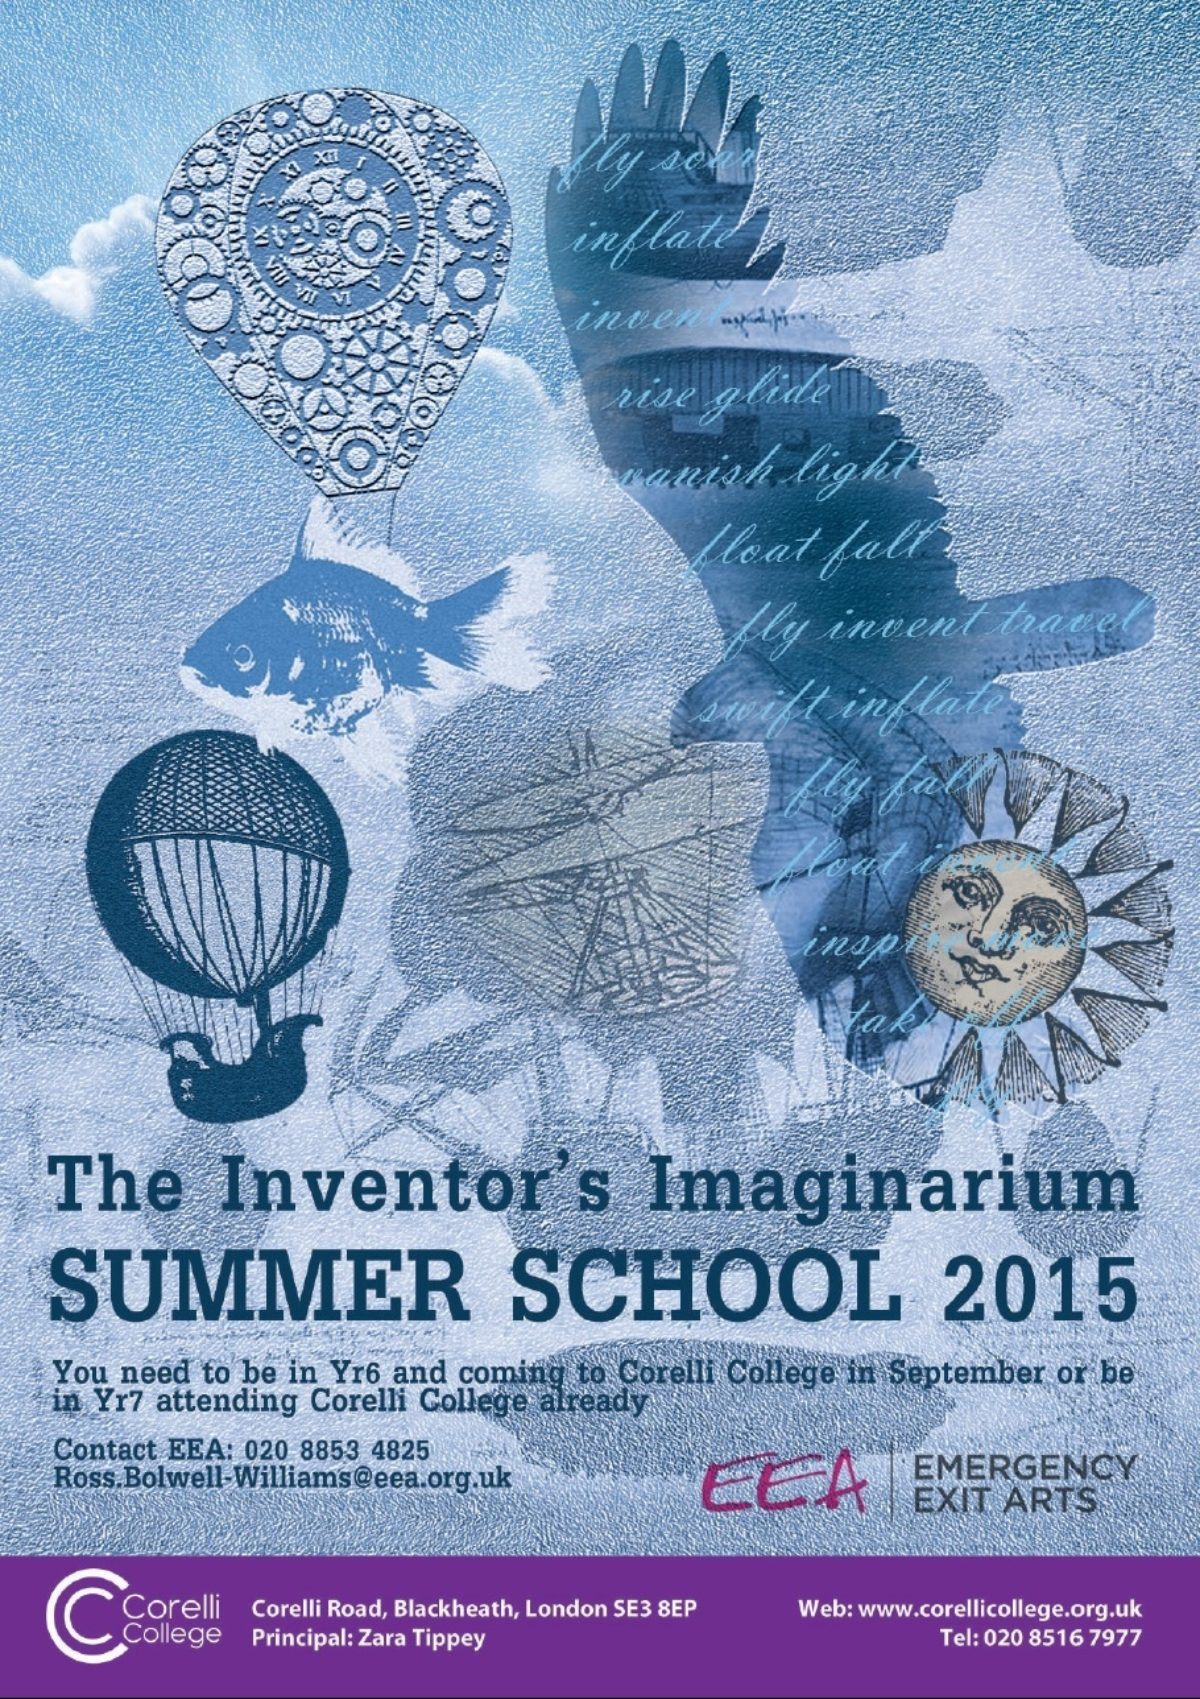 Inventors Imaginarium Corelli Summer School 2015 Flyer